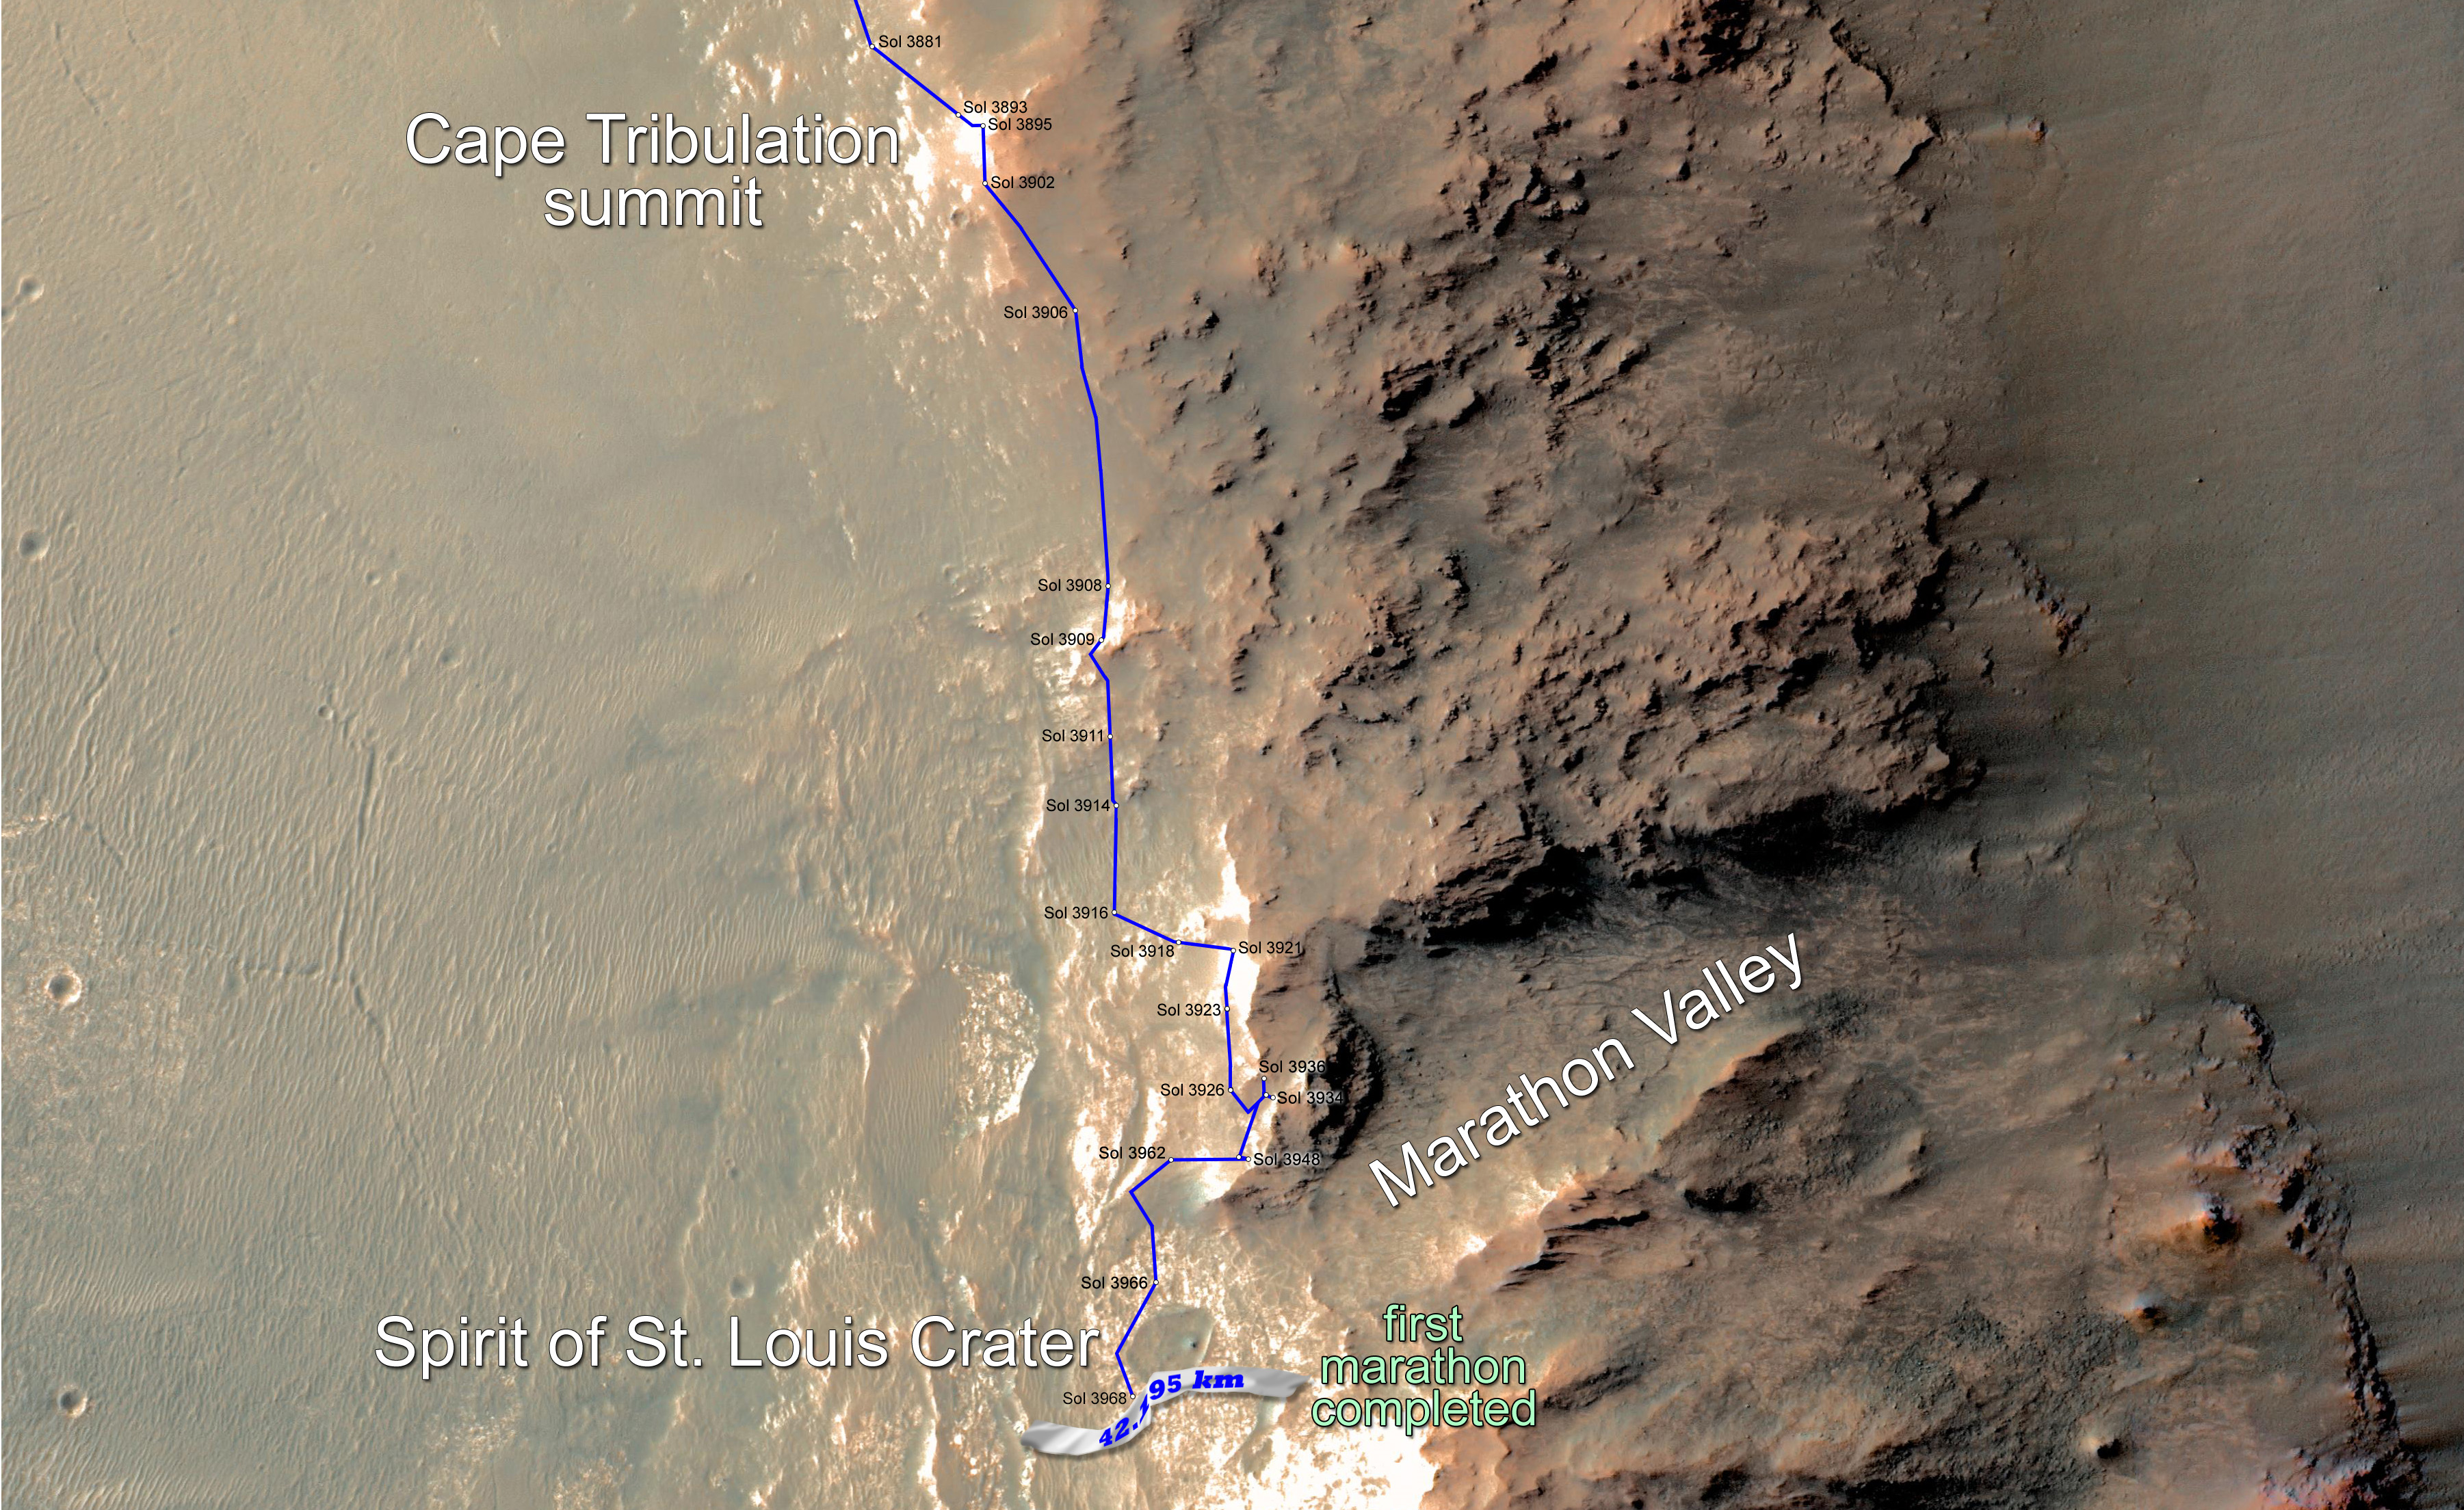 Opportunity Mars Rover Finishes Marathon in Just Over 11 Years